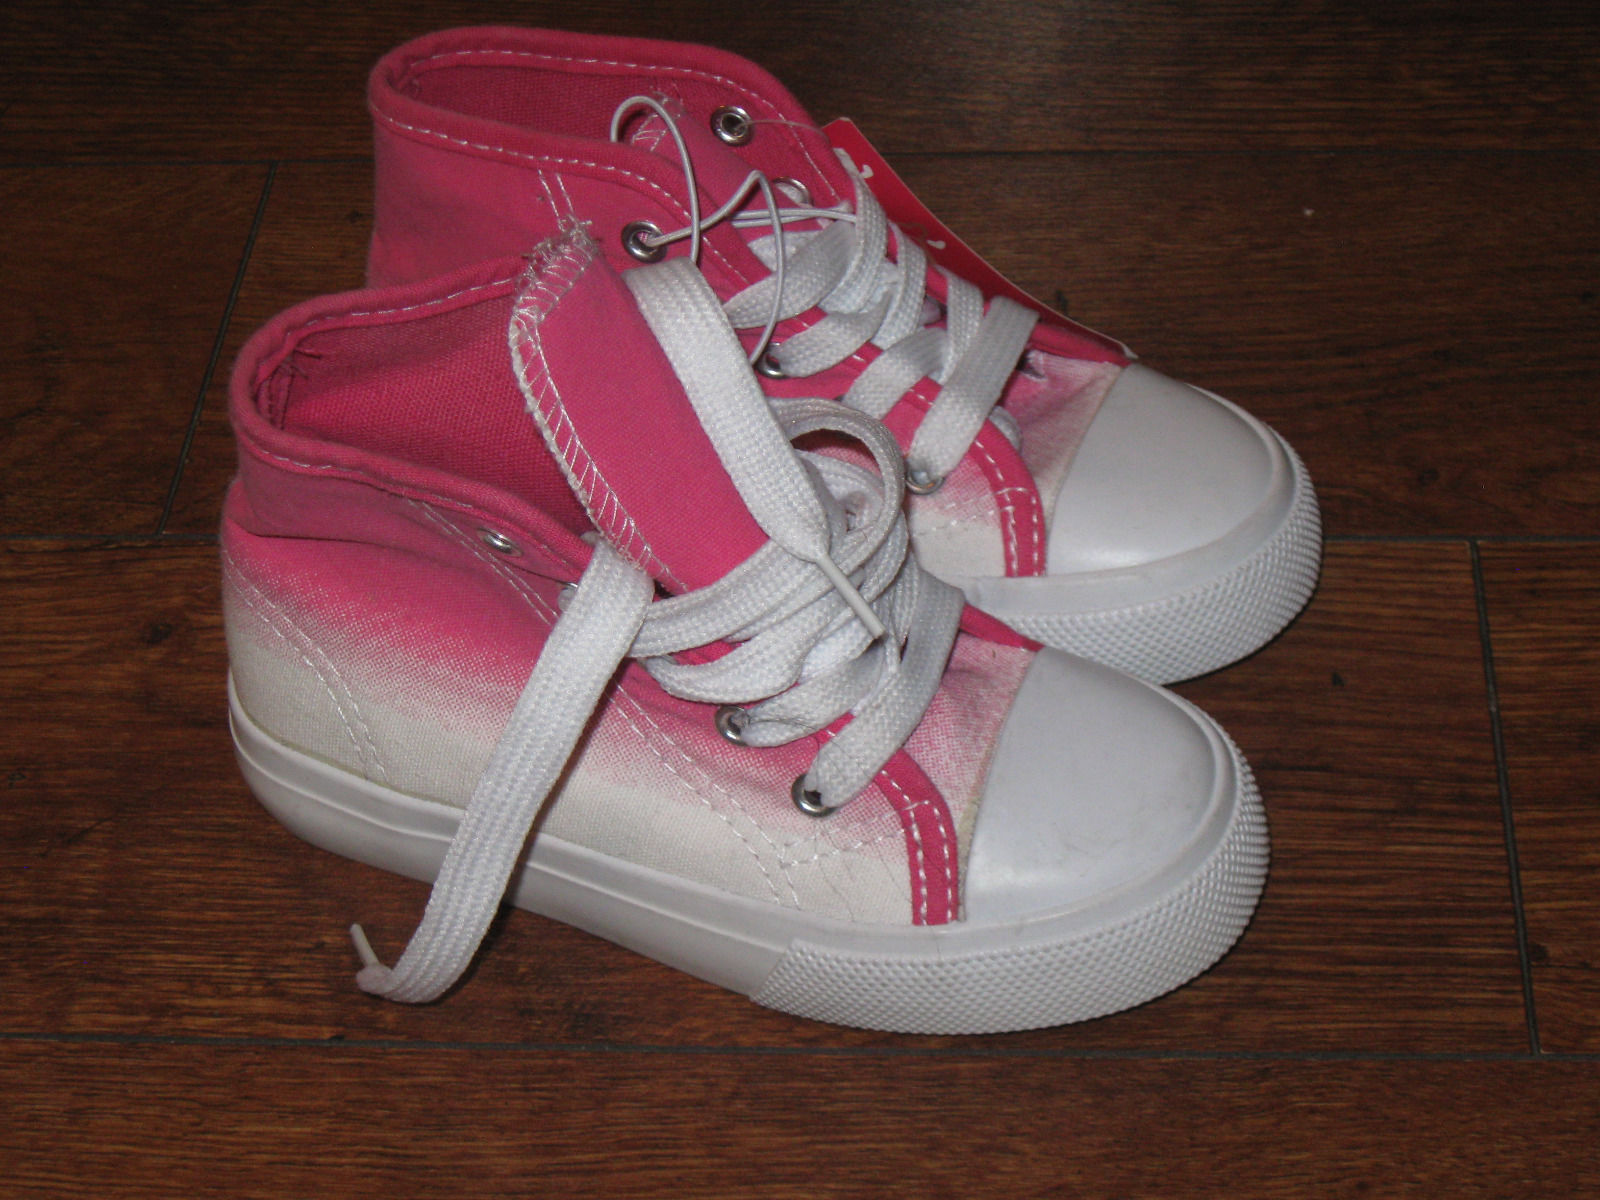 Primary image for Sz 9 Kids Girls Boys Canvas Pink Gradient CUTE!!! Sneakers Shoes Casual  Lace-up